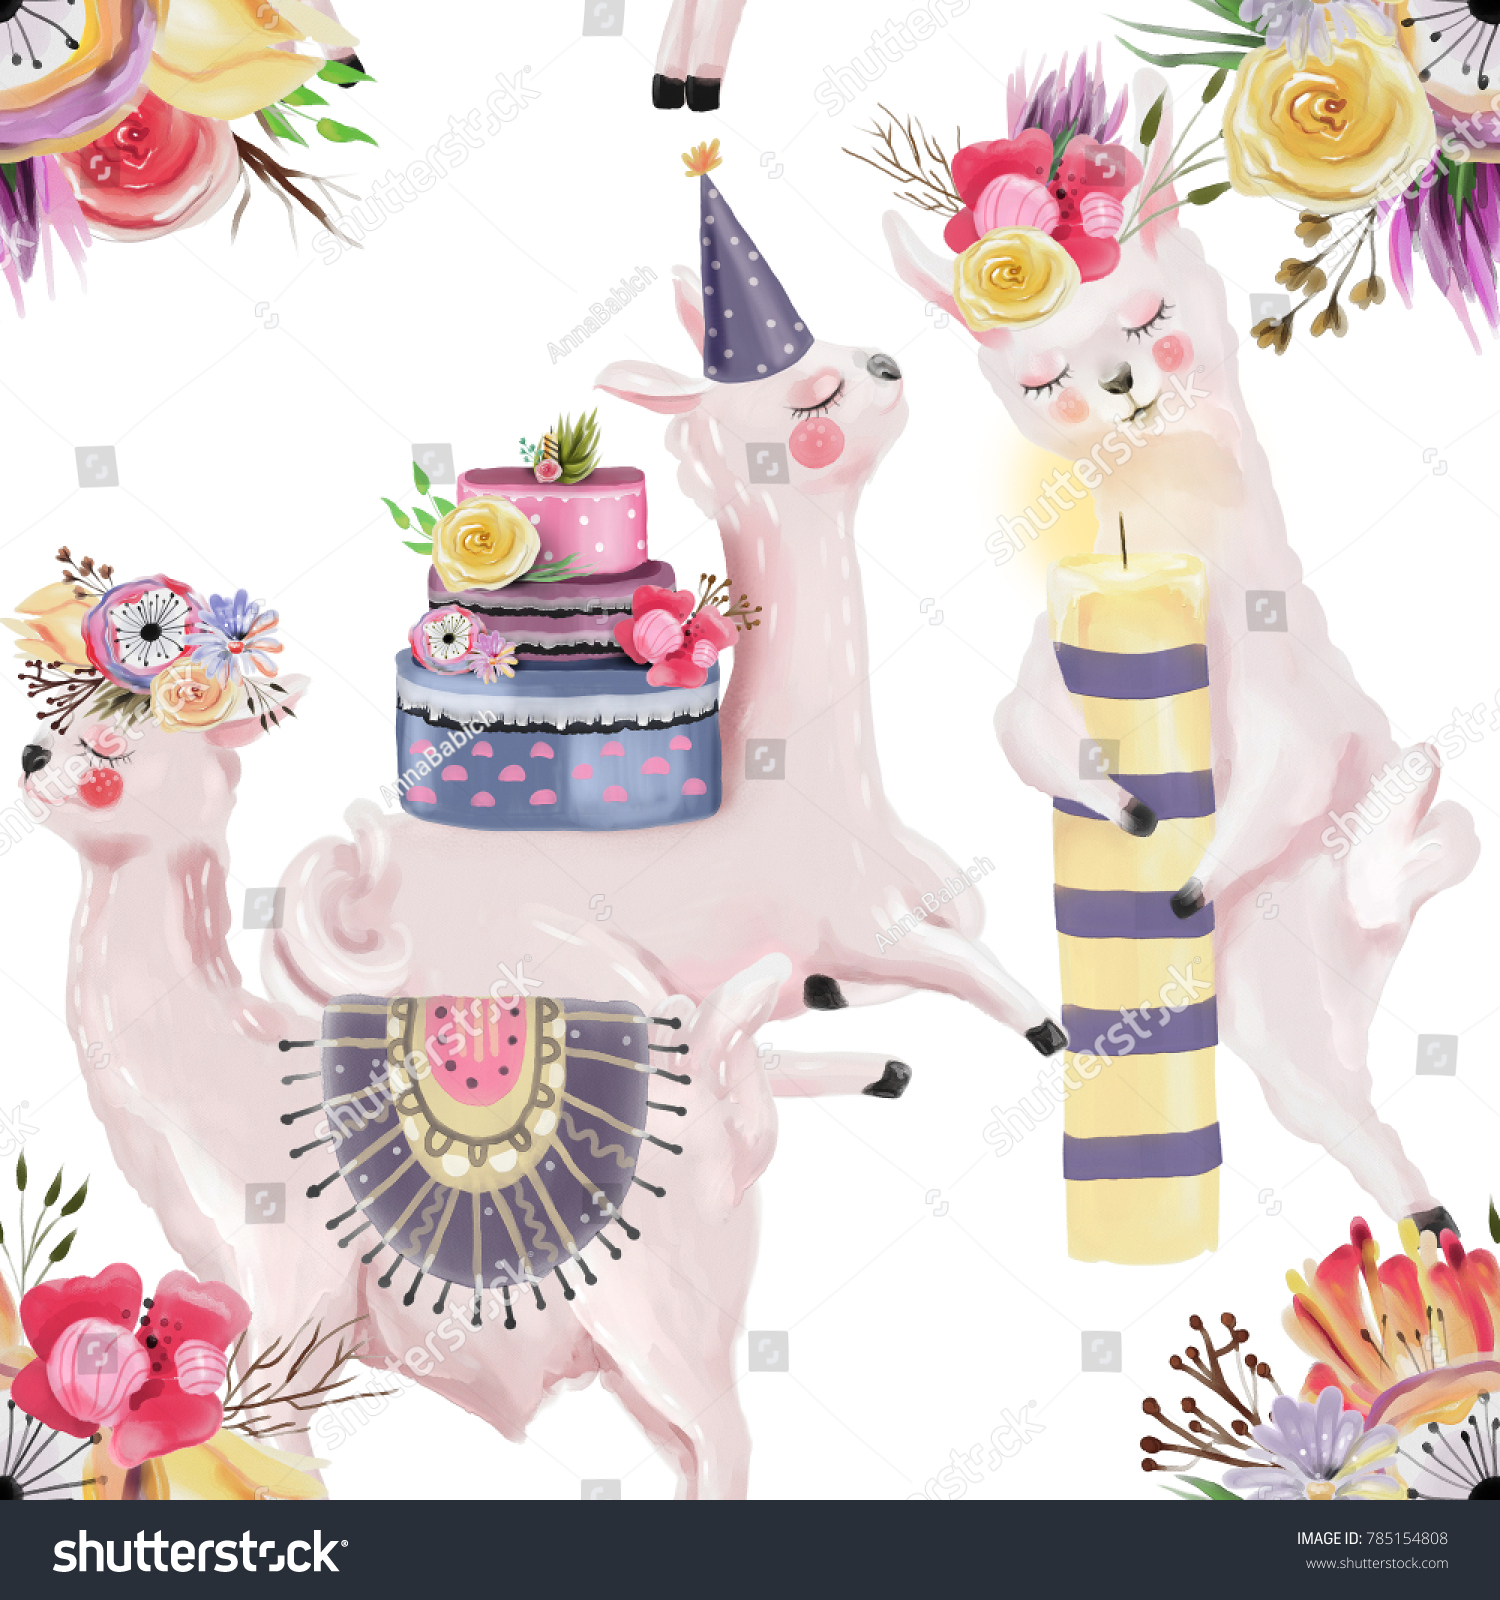 Cute Watercolor Llamas Alpacas With Birthday Cake Hat Candle And Flower Wreaths Seamless